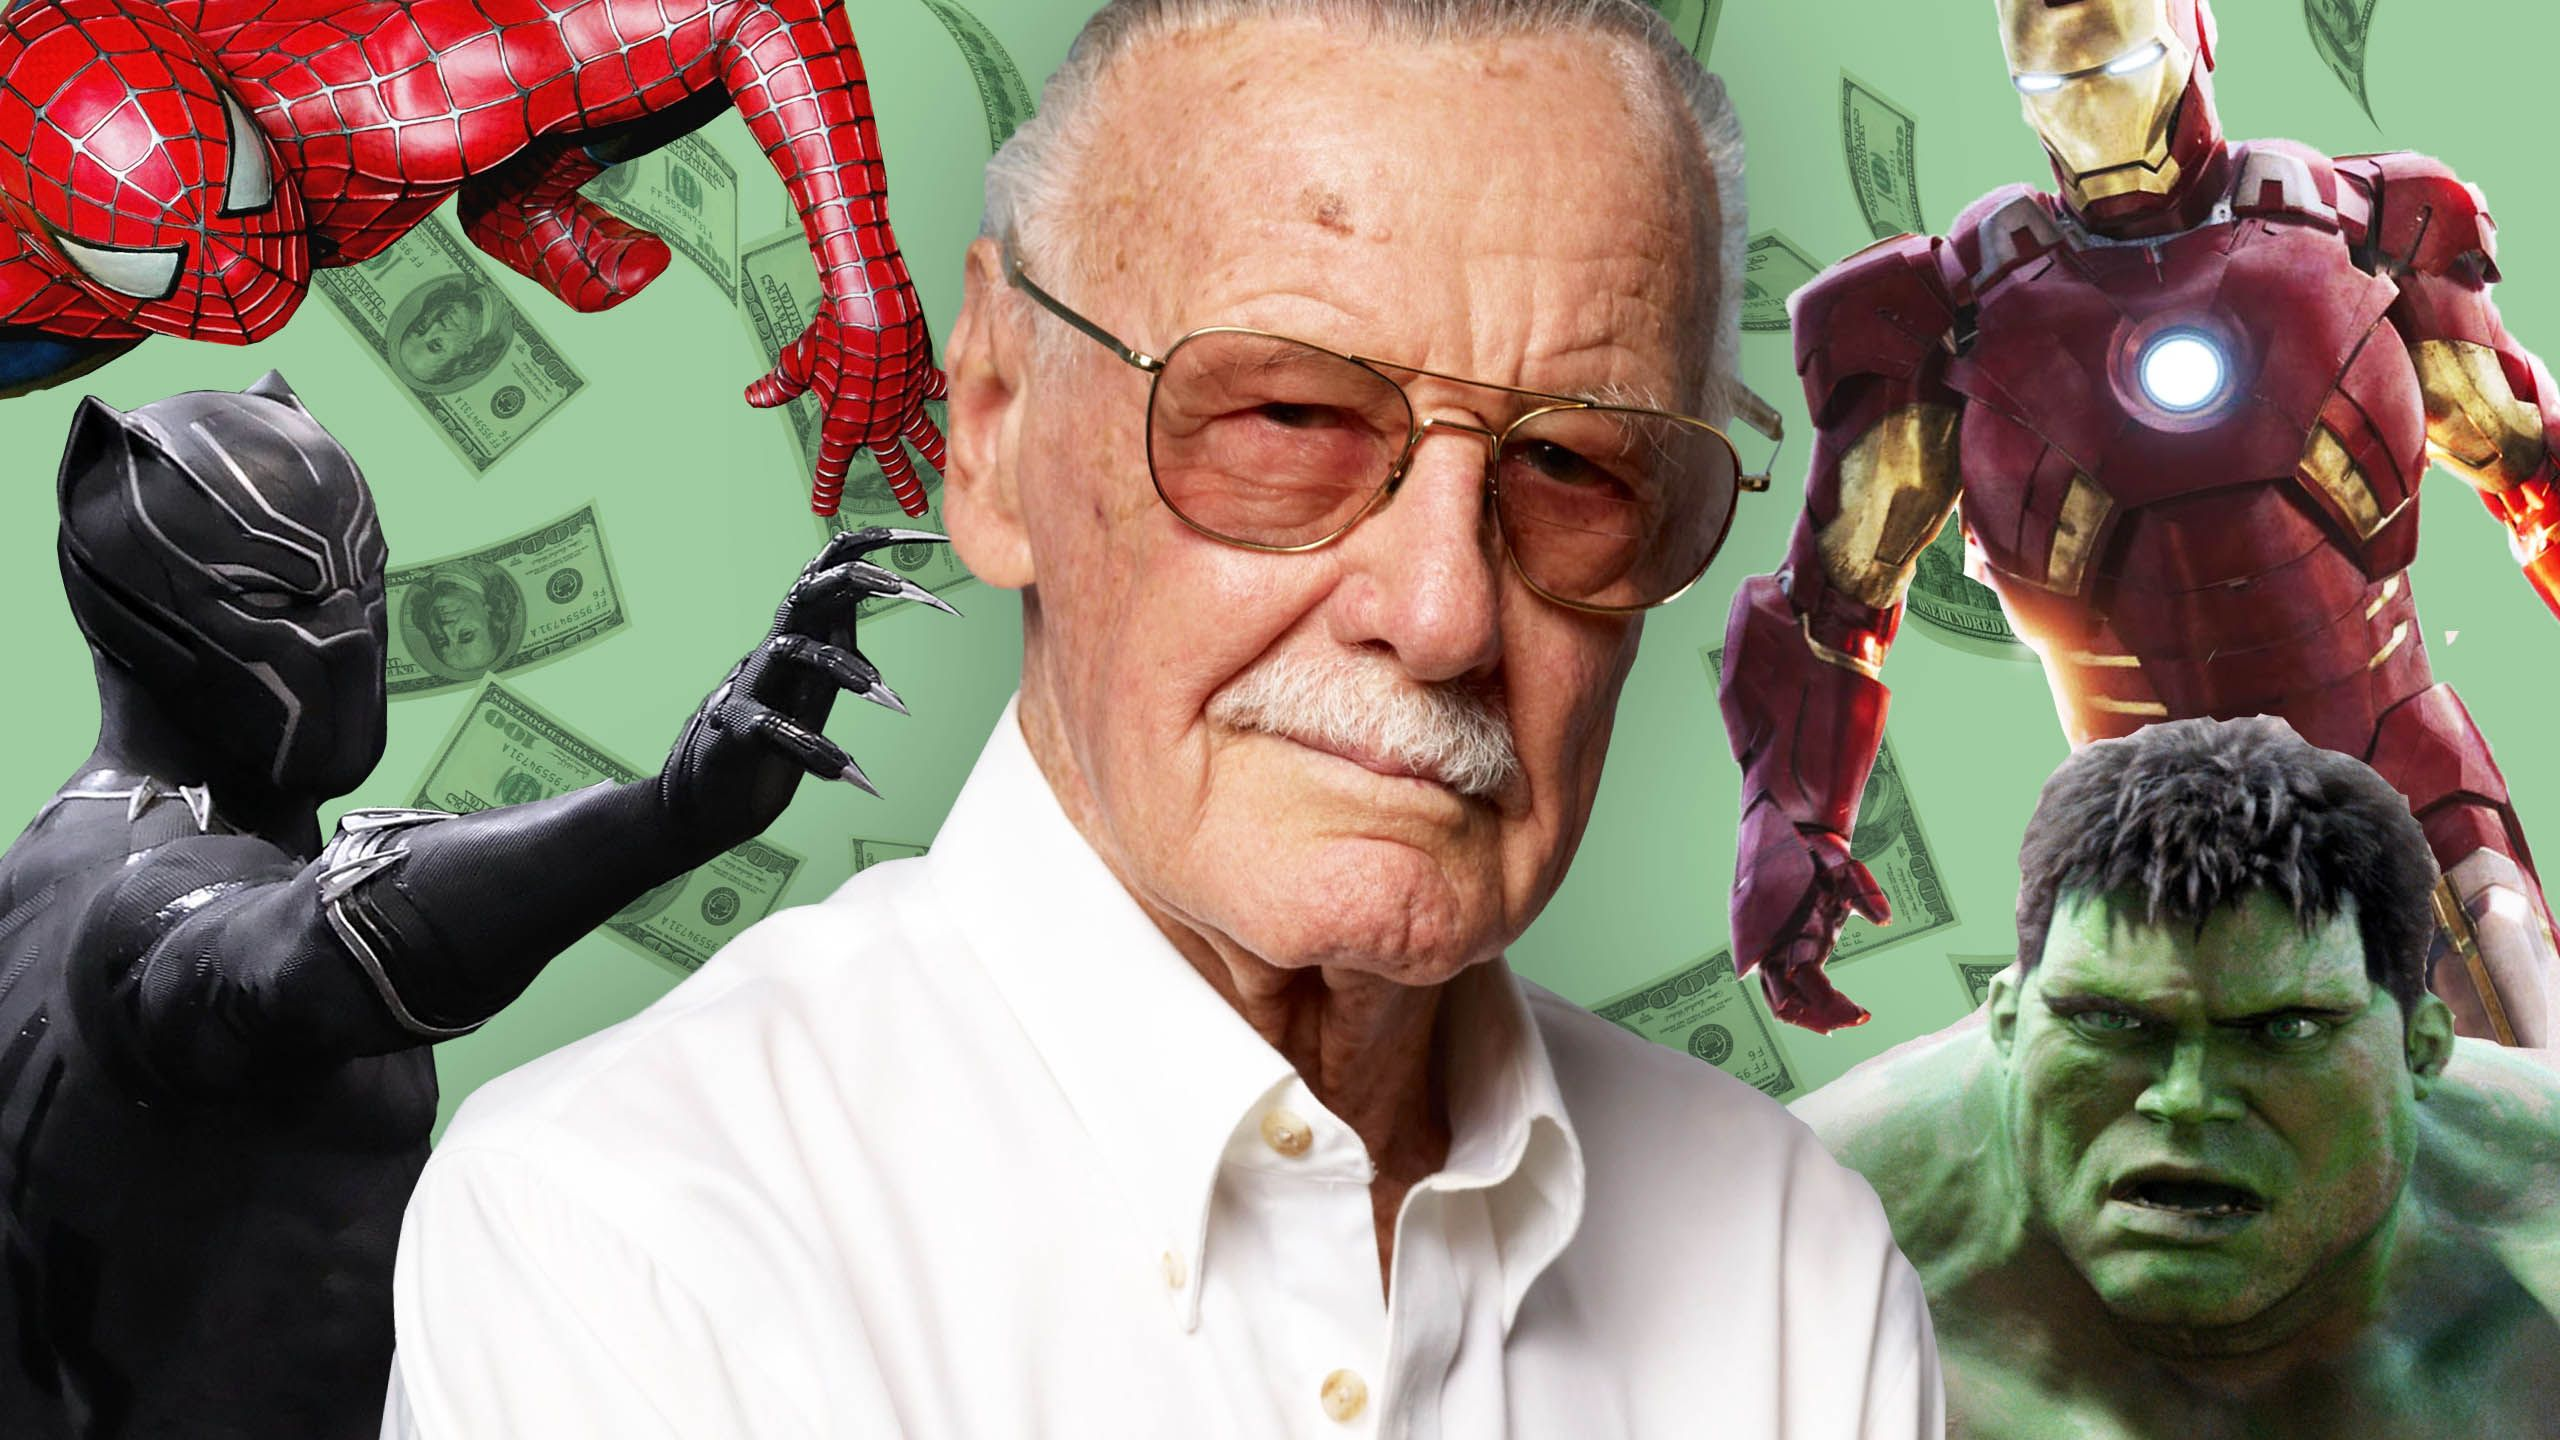 Months After Losing His Wife The 95 Year Old Comic Book Legend Is Surrounded By Charlatans And Mountebanks Tragic Stan Lee Old Comic Books Comic Heroes